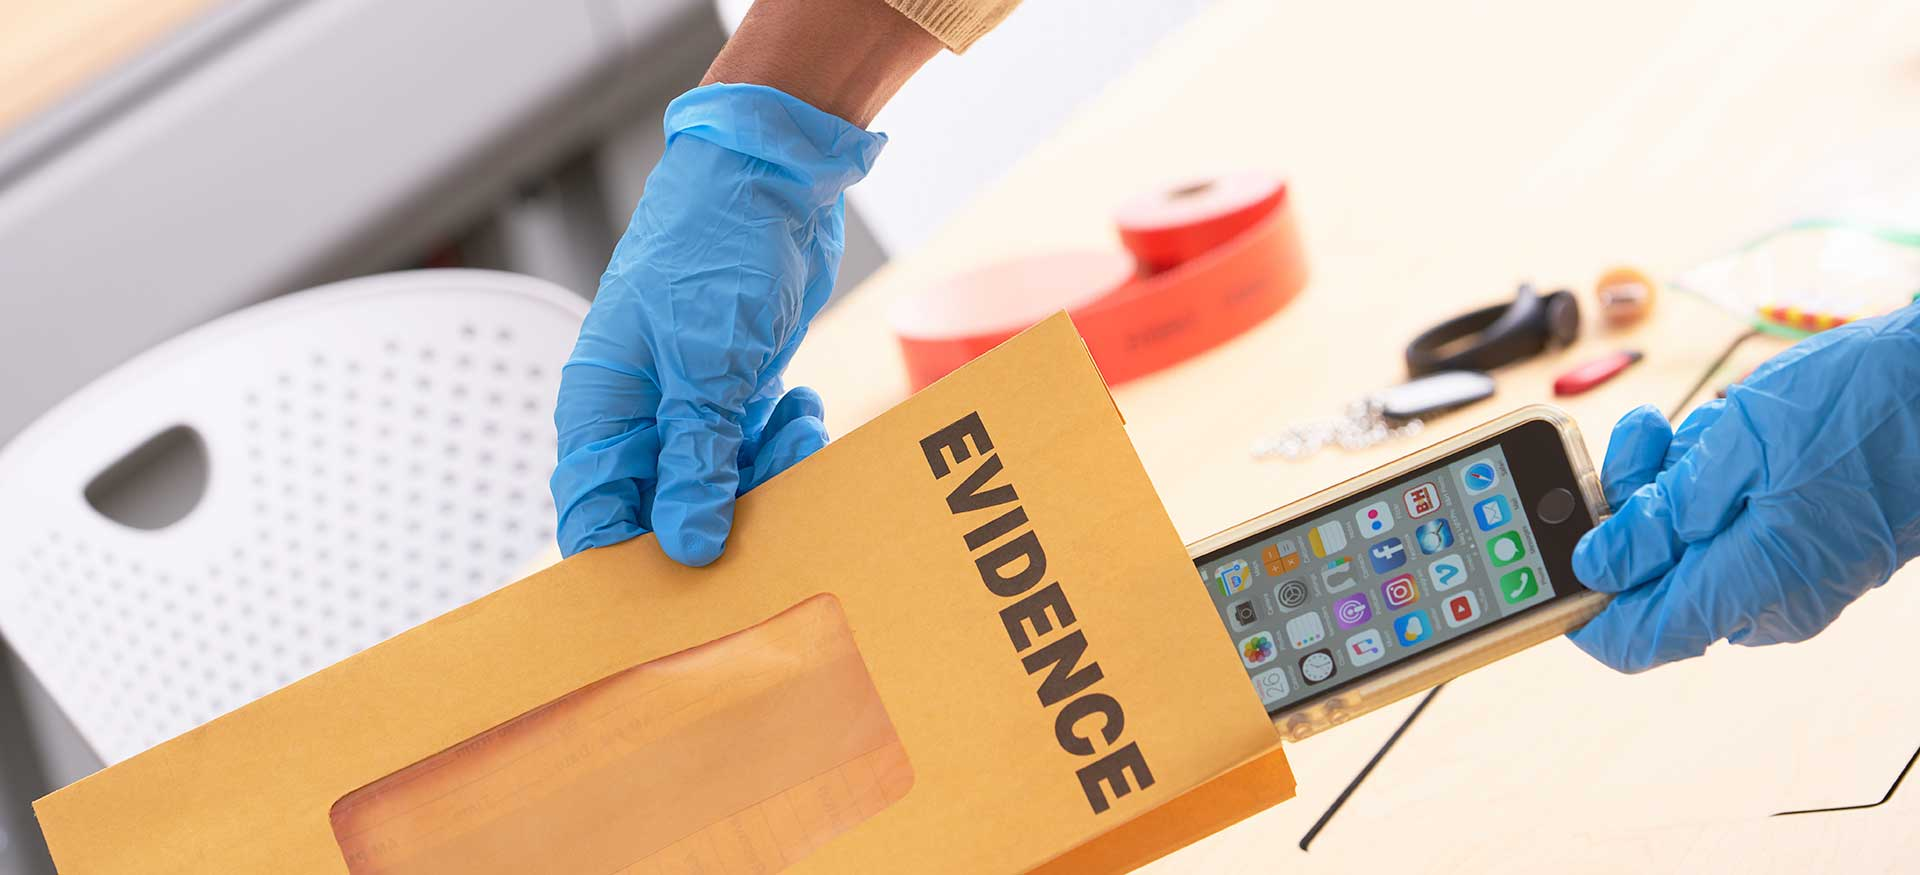 Forensic Science and Criminalistics